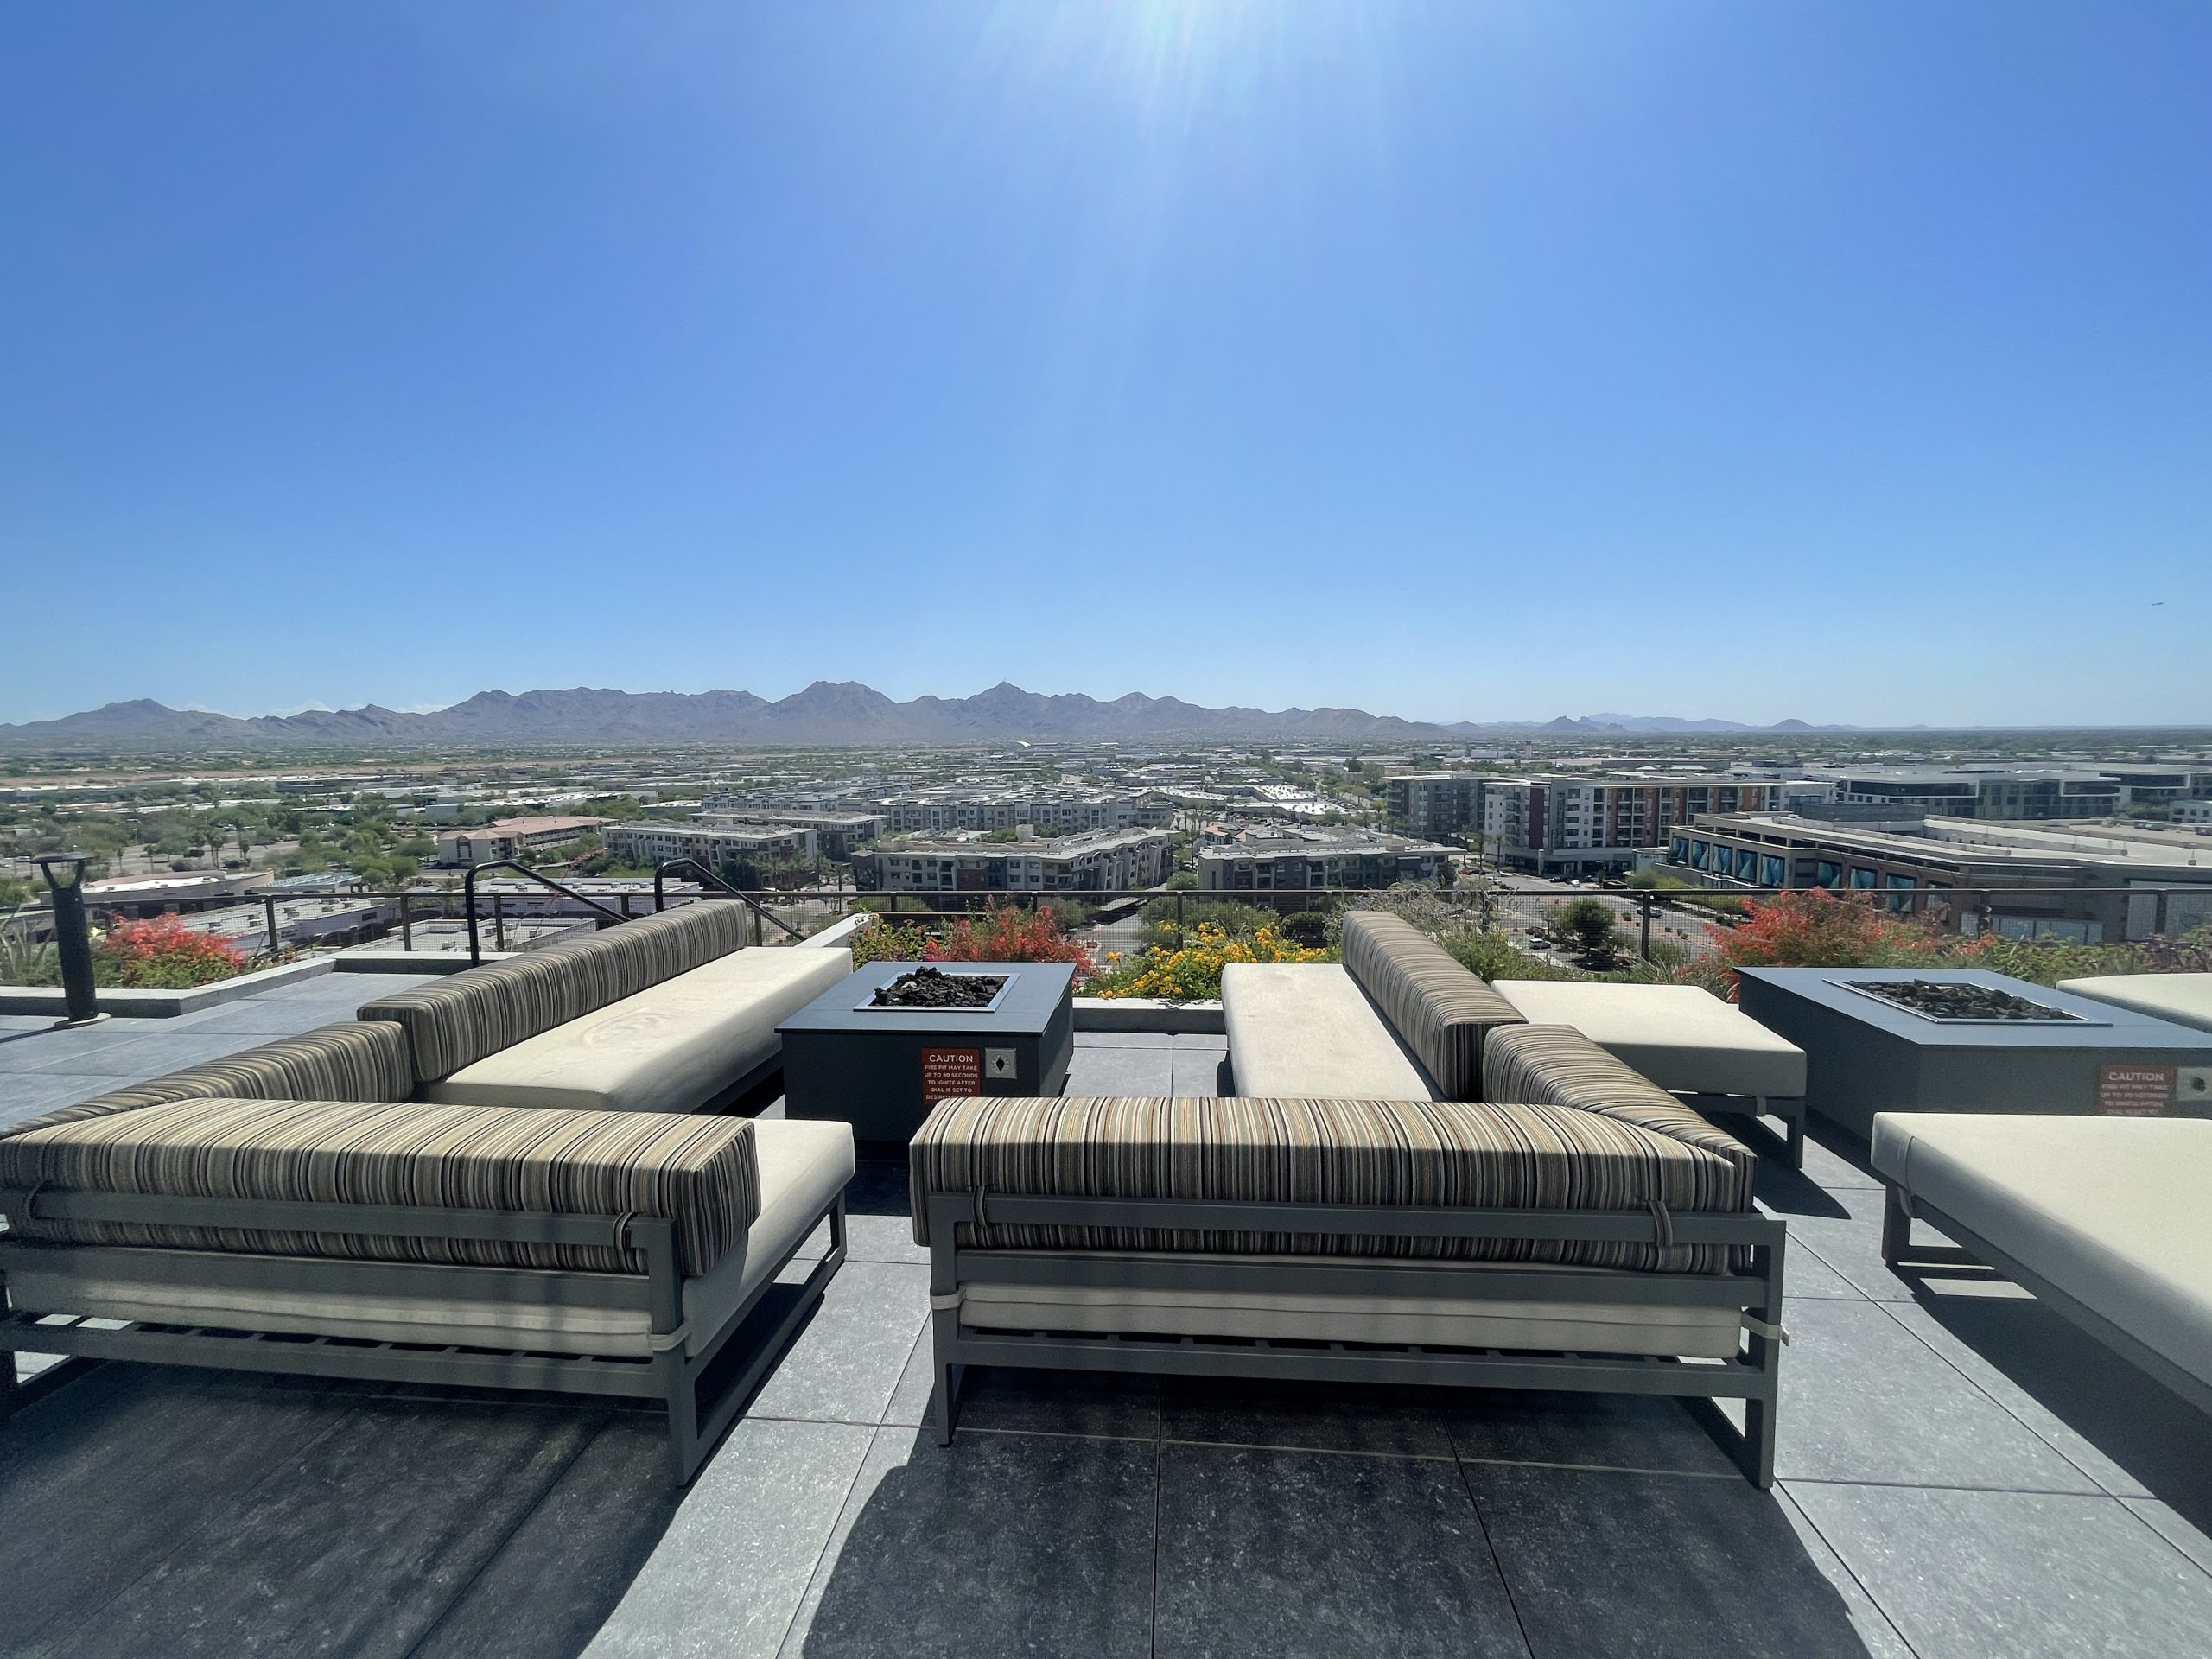 View to the East from the Optima Rooftop